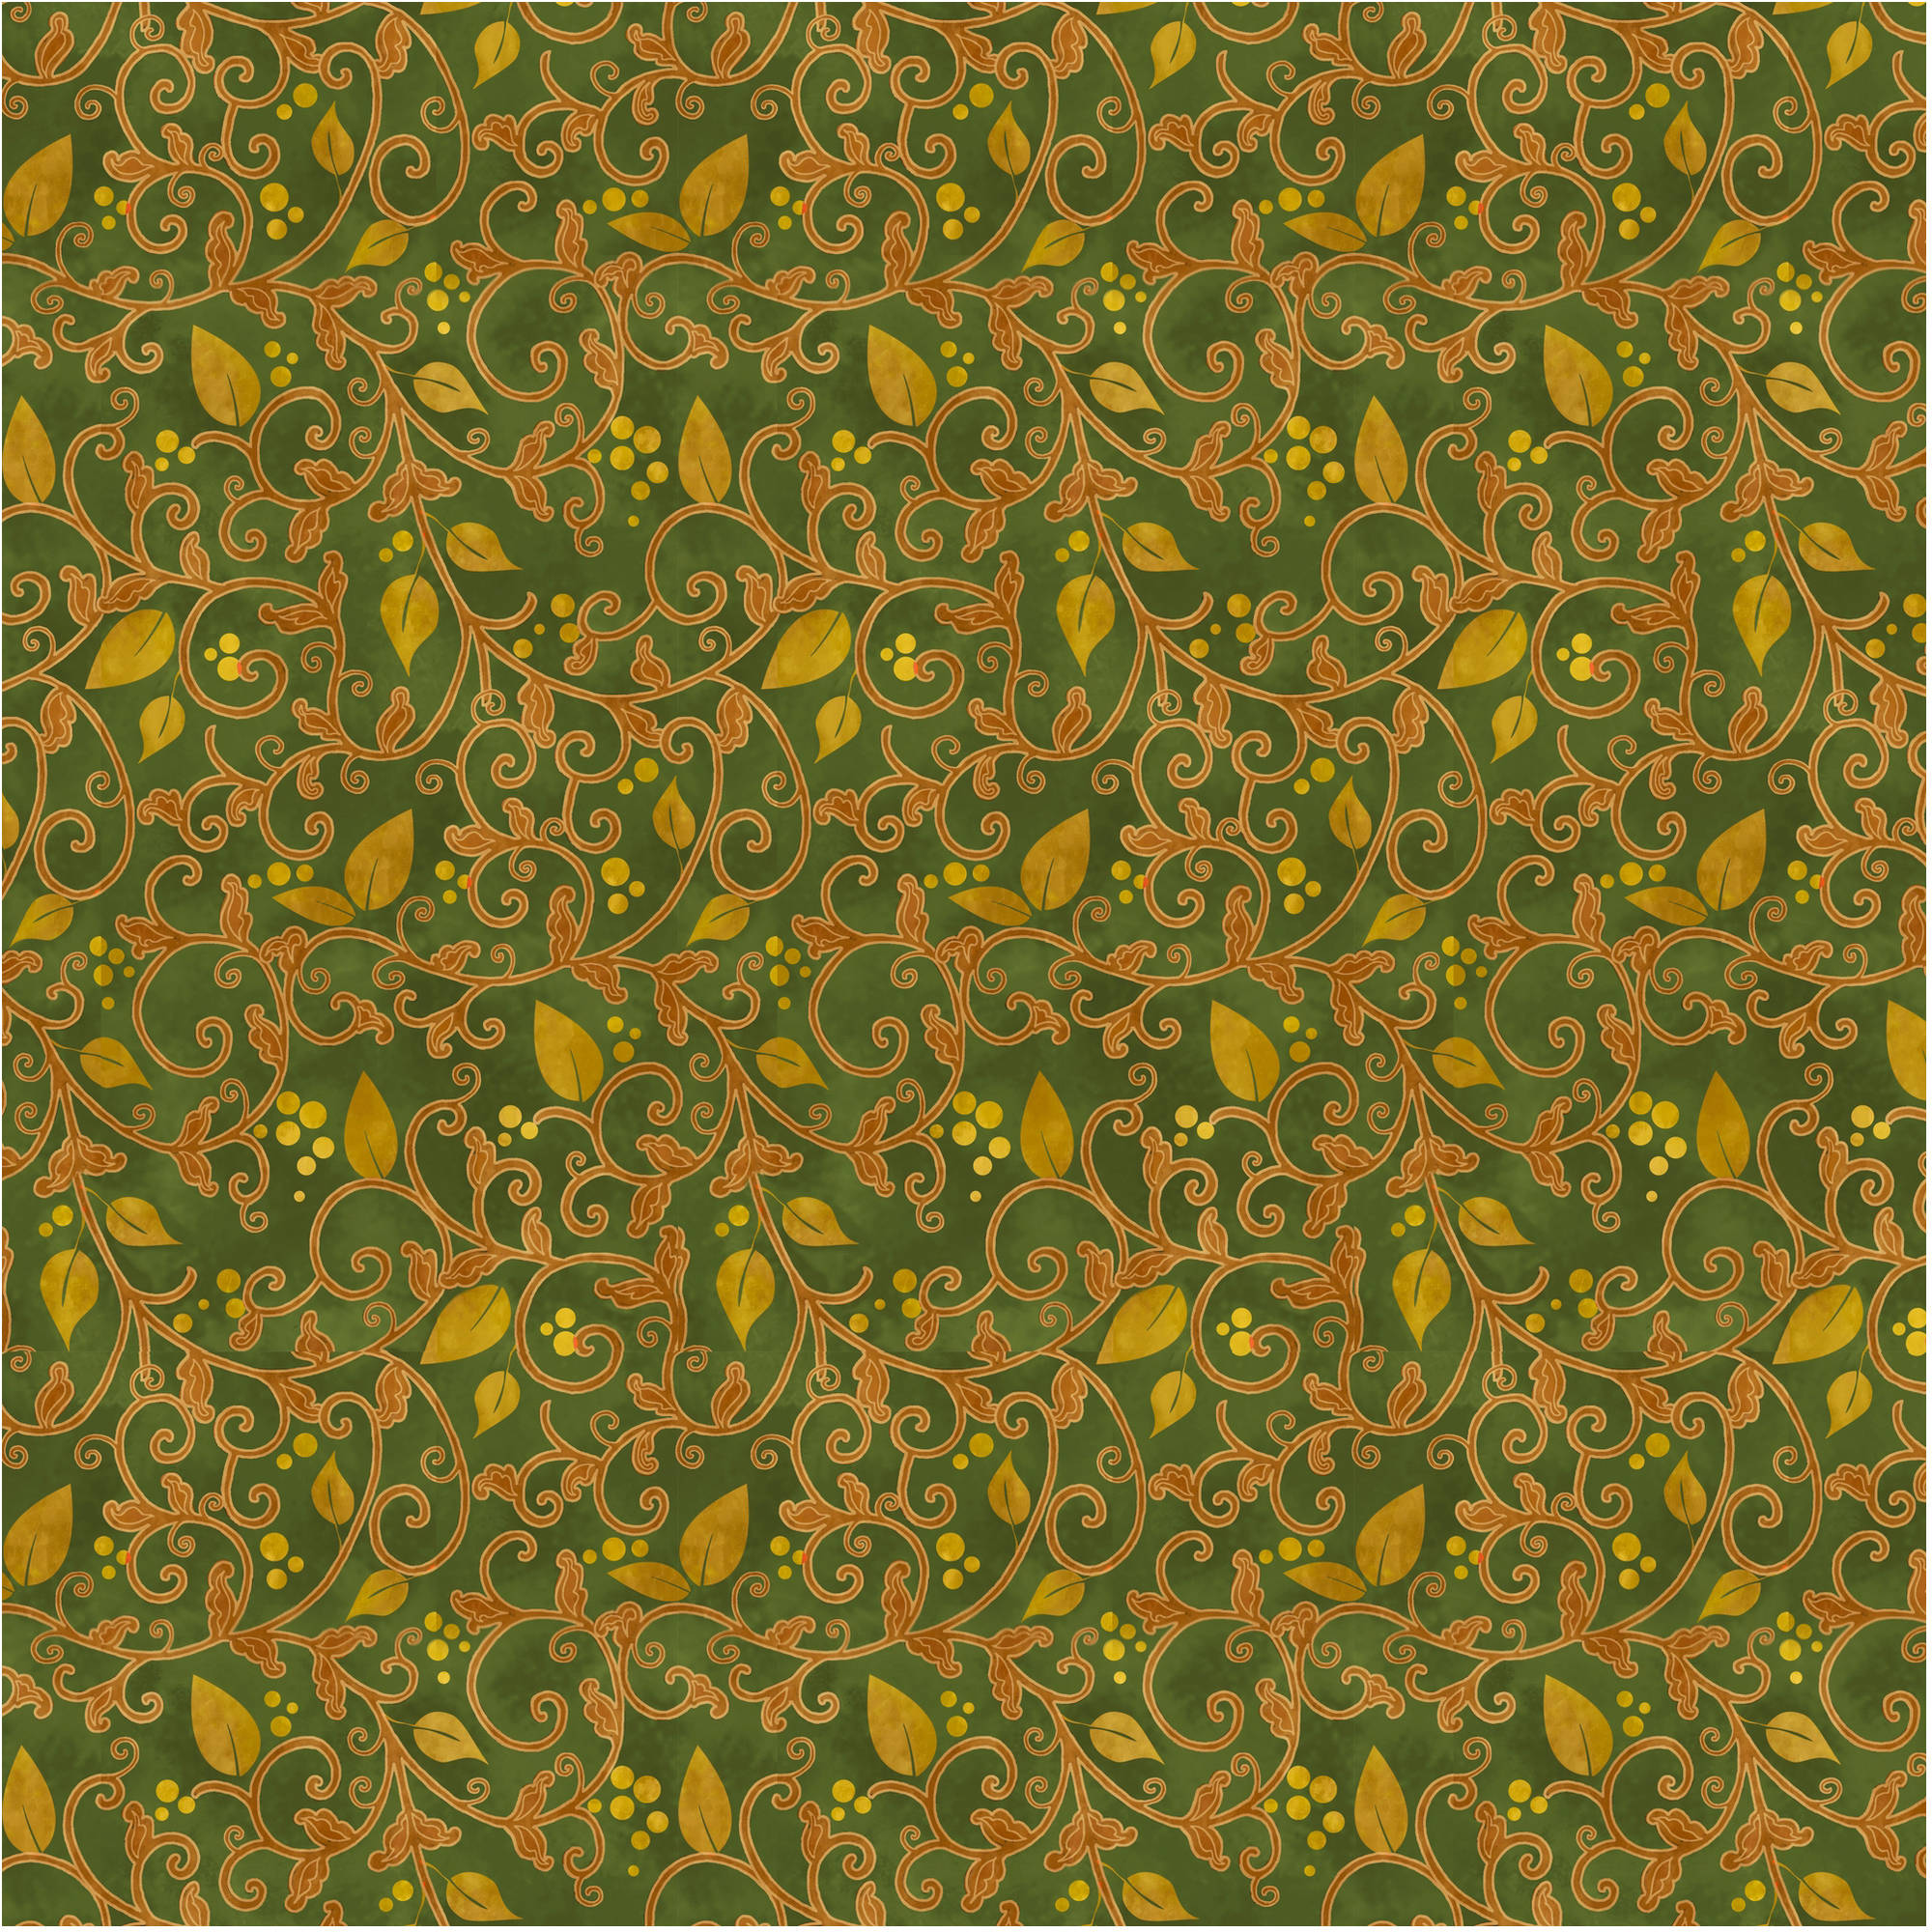 Harvest Golden Vine Moss Green Cotton By The Yard, 44""